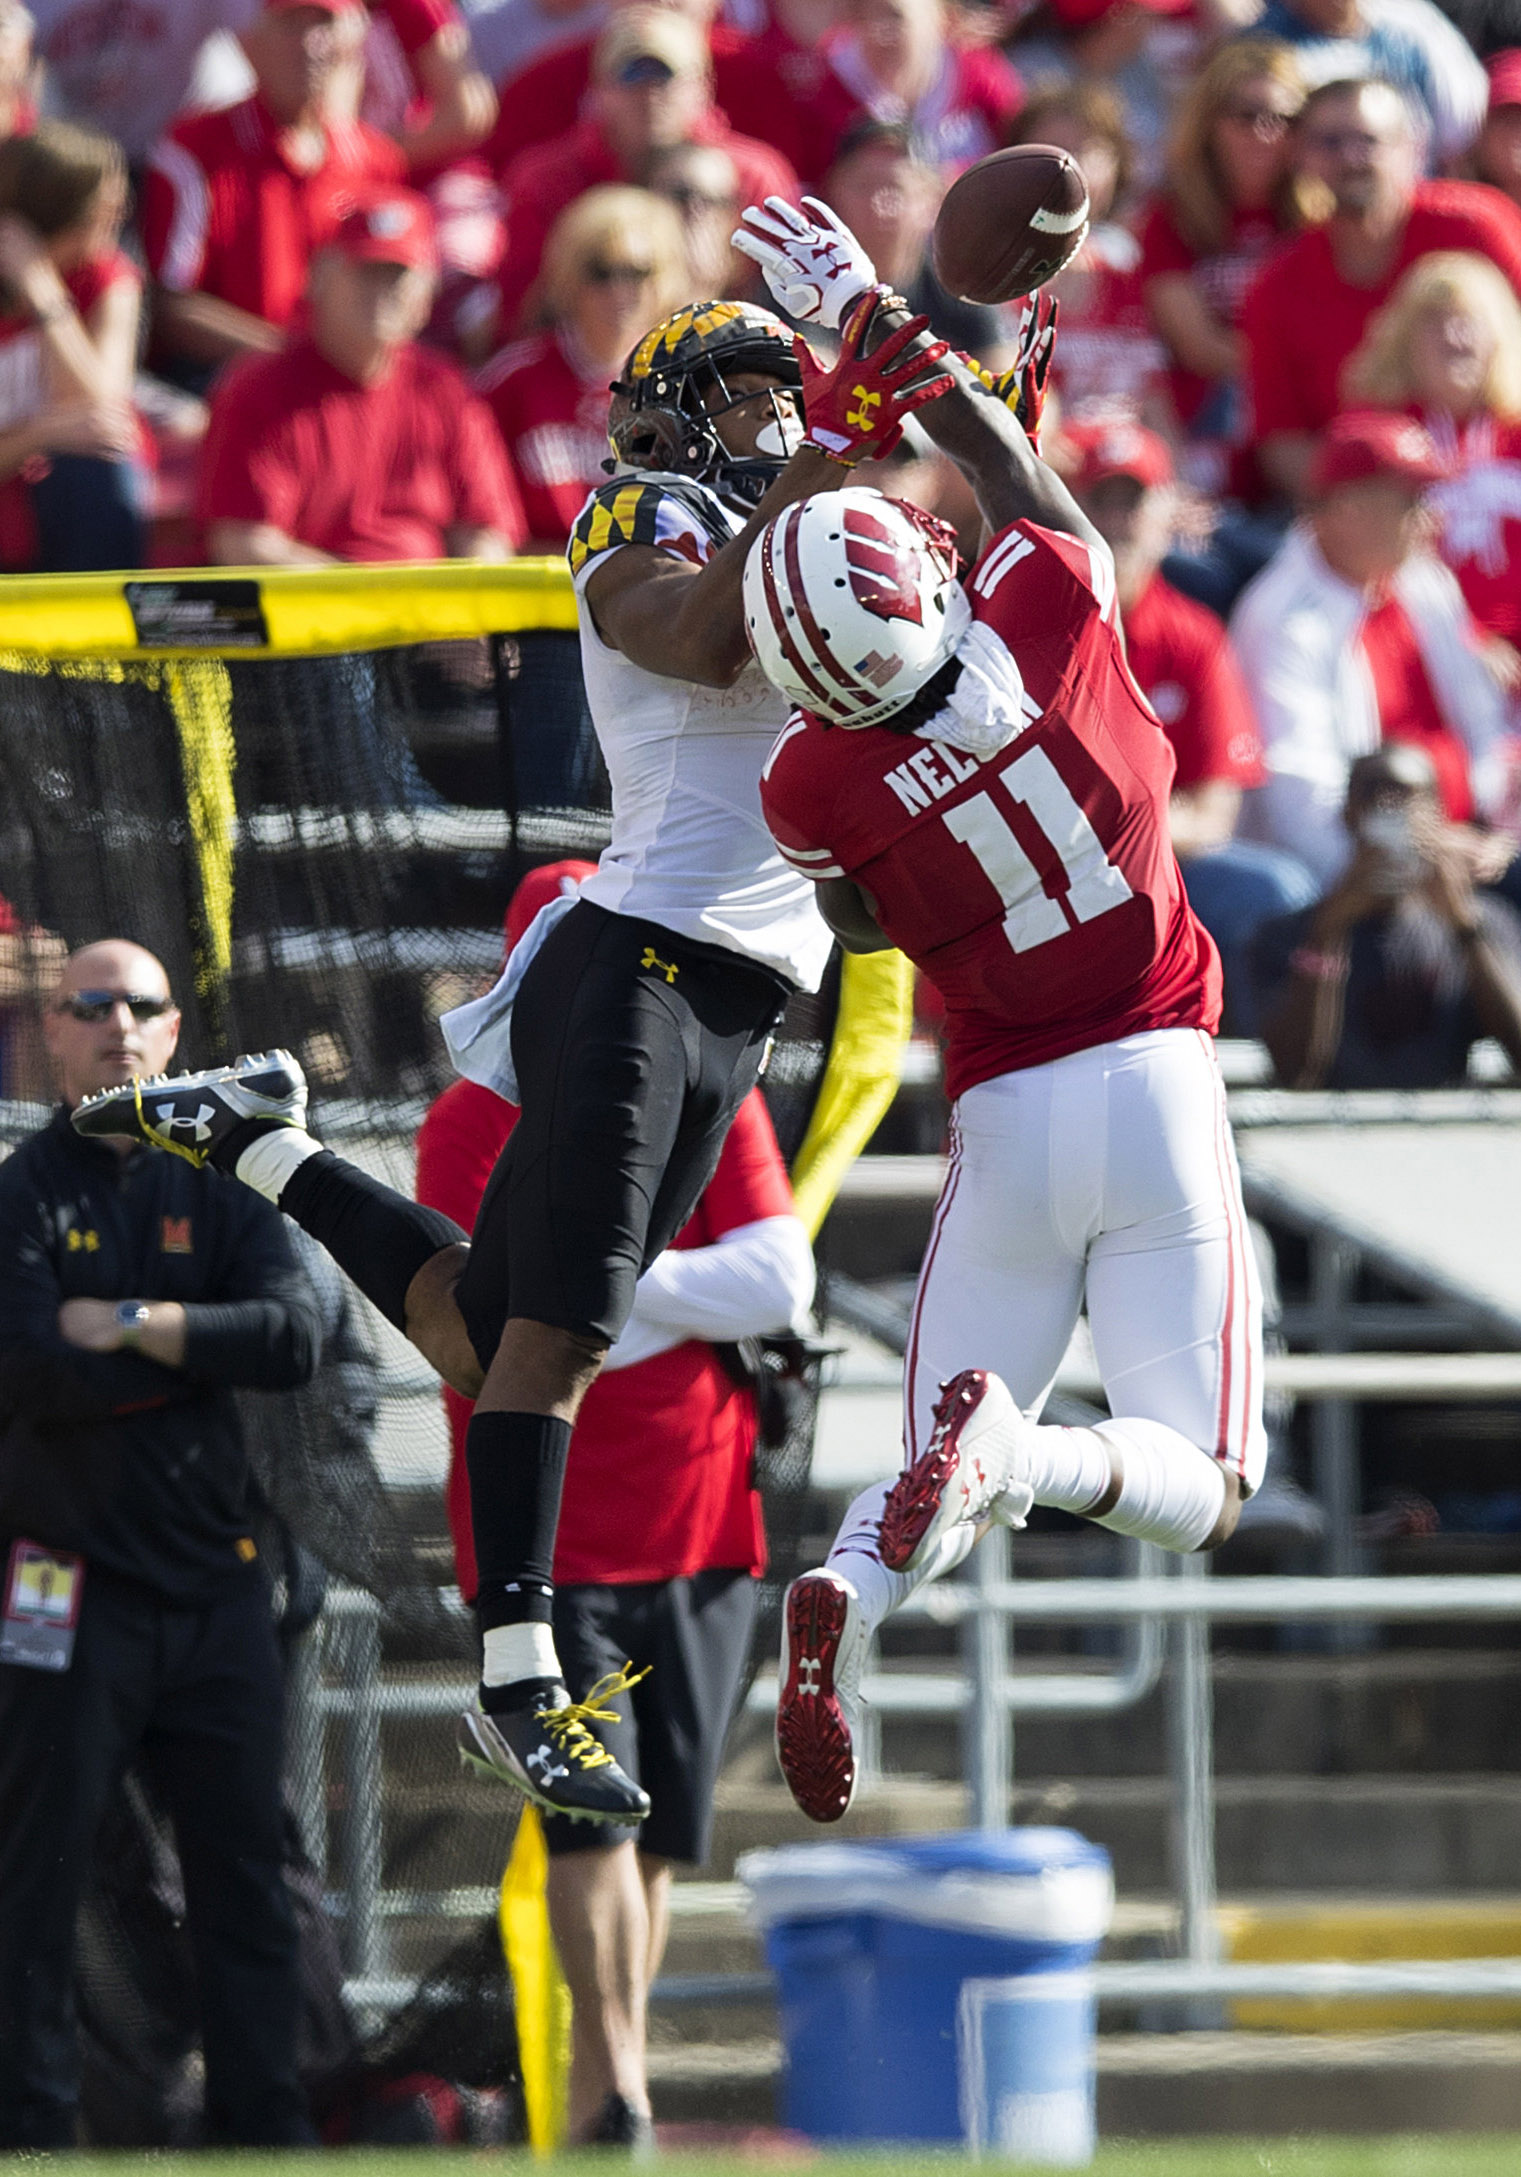 NCAA Football: Maryland during Wisconsin